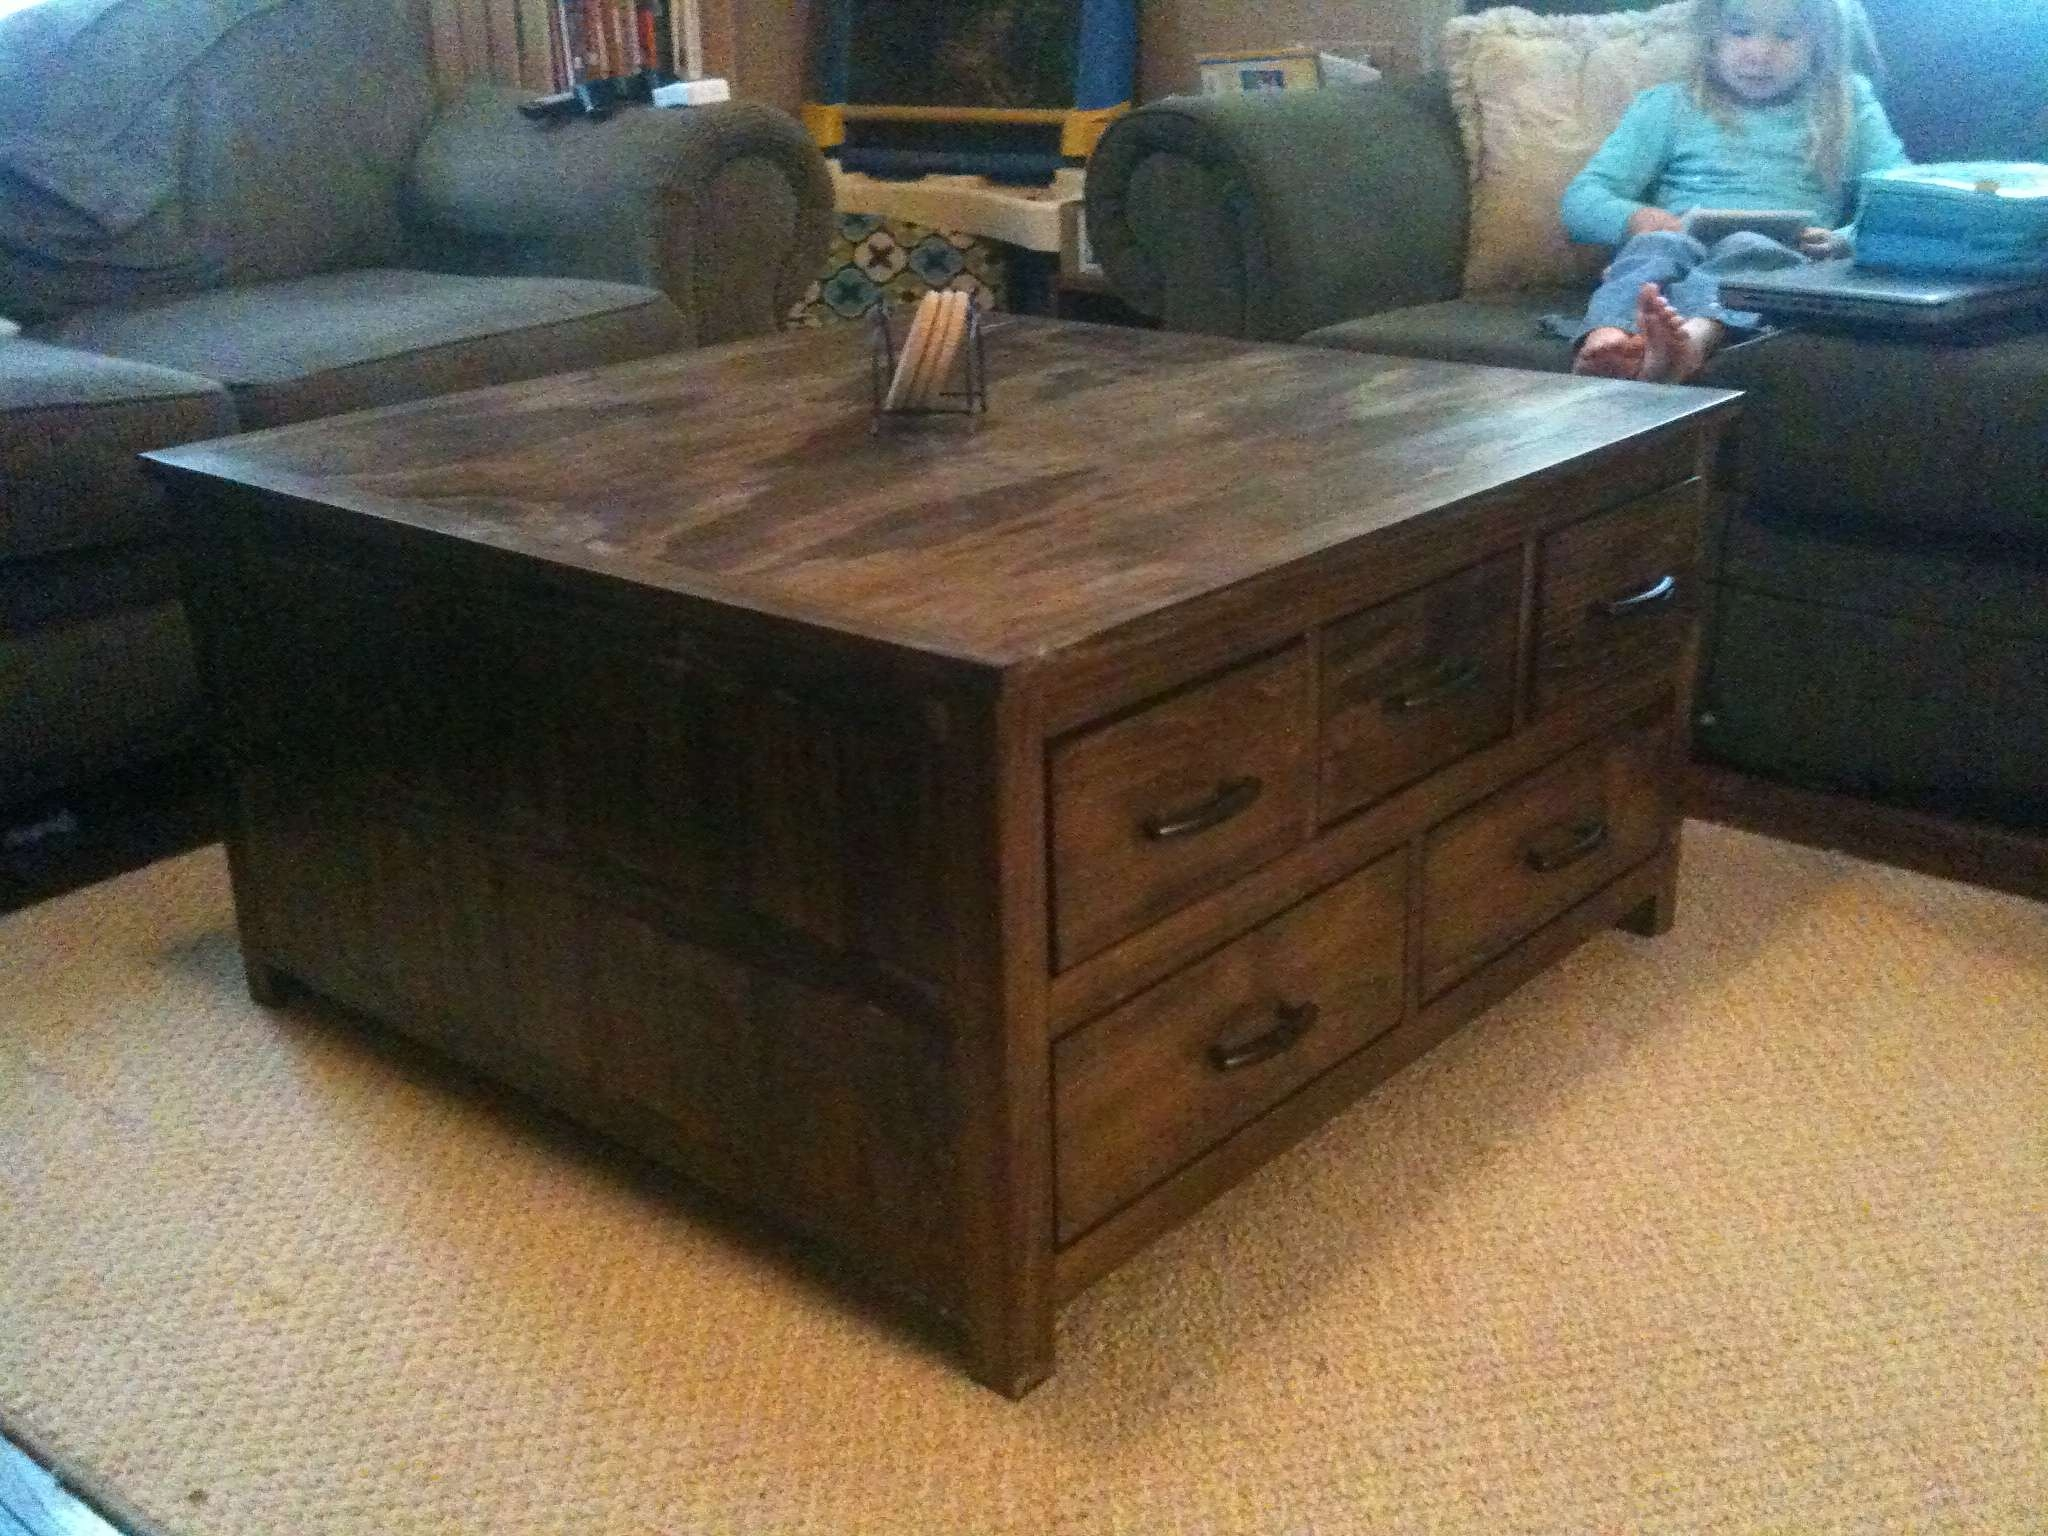 Most Current Low Coffee Table With Storage In Coffee Tables : Furniture Luxury Coffee Table With Stools For (View 14 of 20)